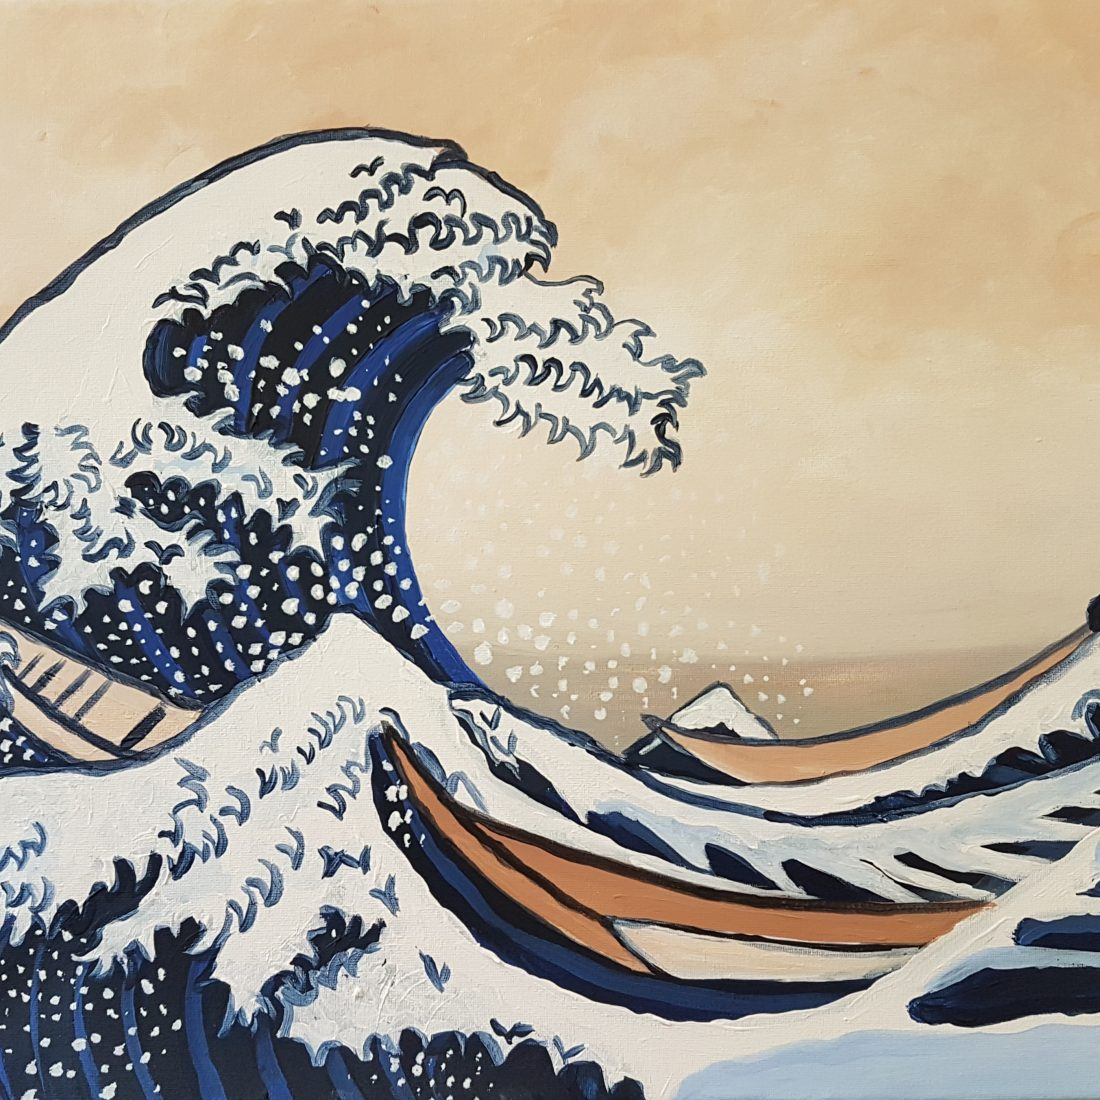 The Great Wave by Hasuka